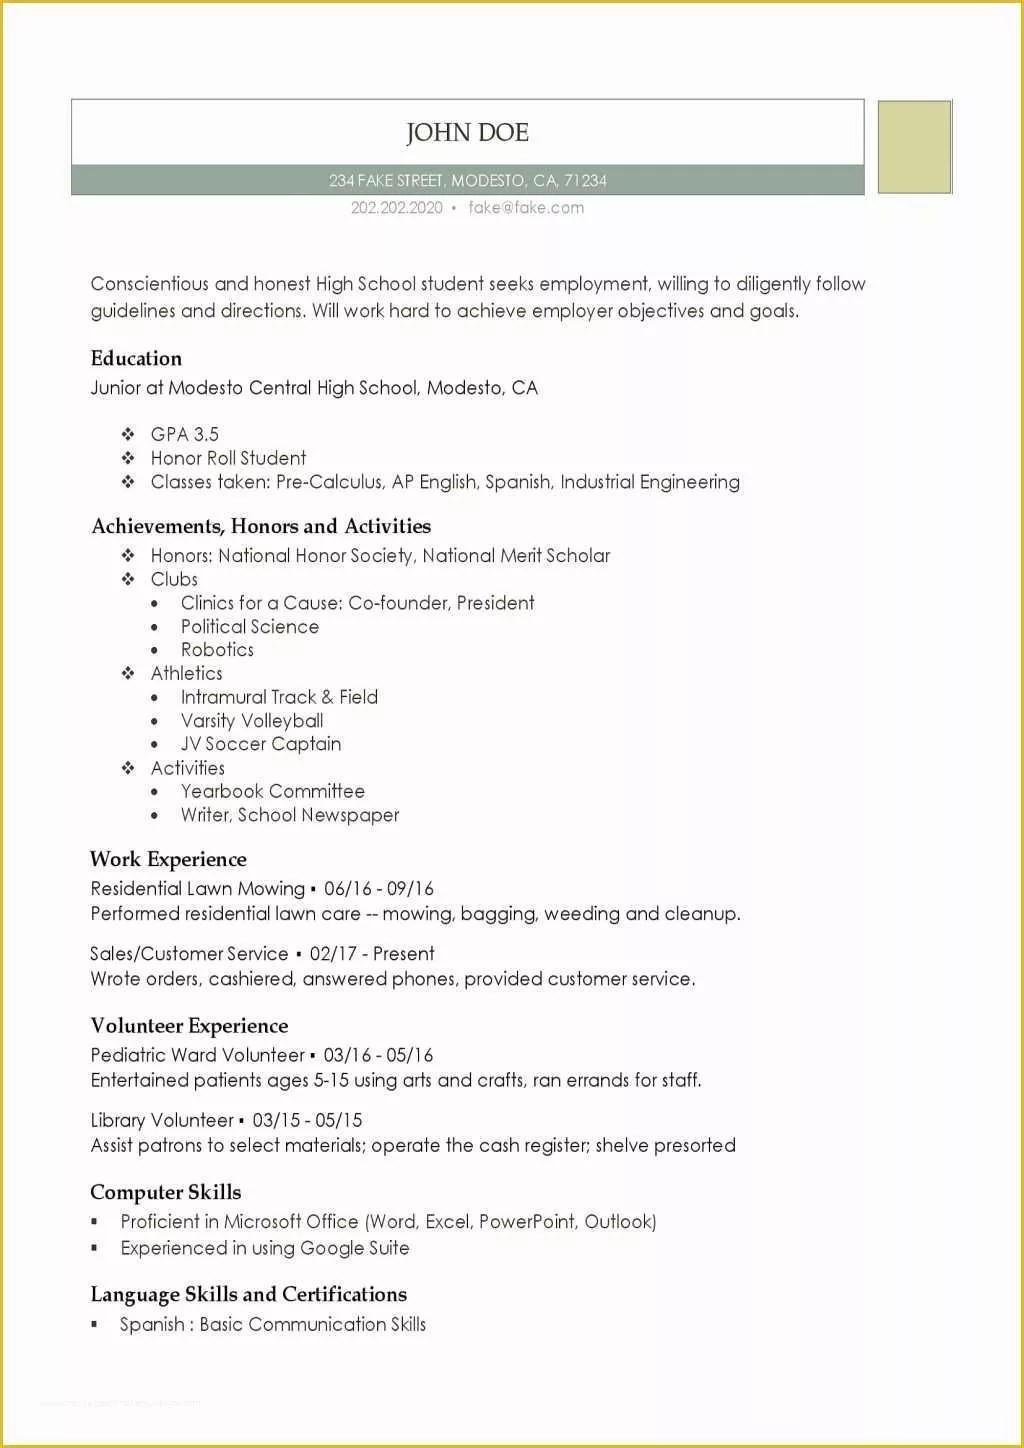 Free High School Resume Template Resume Templates Free For High School Students Of Free Printable